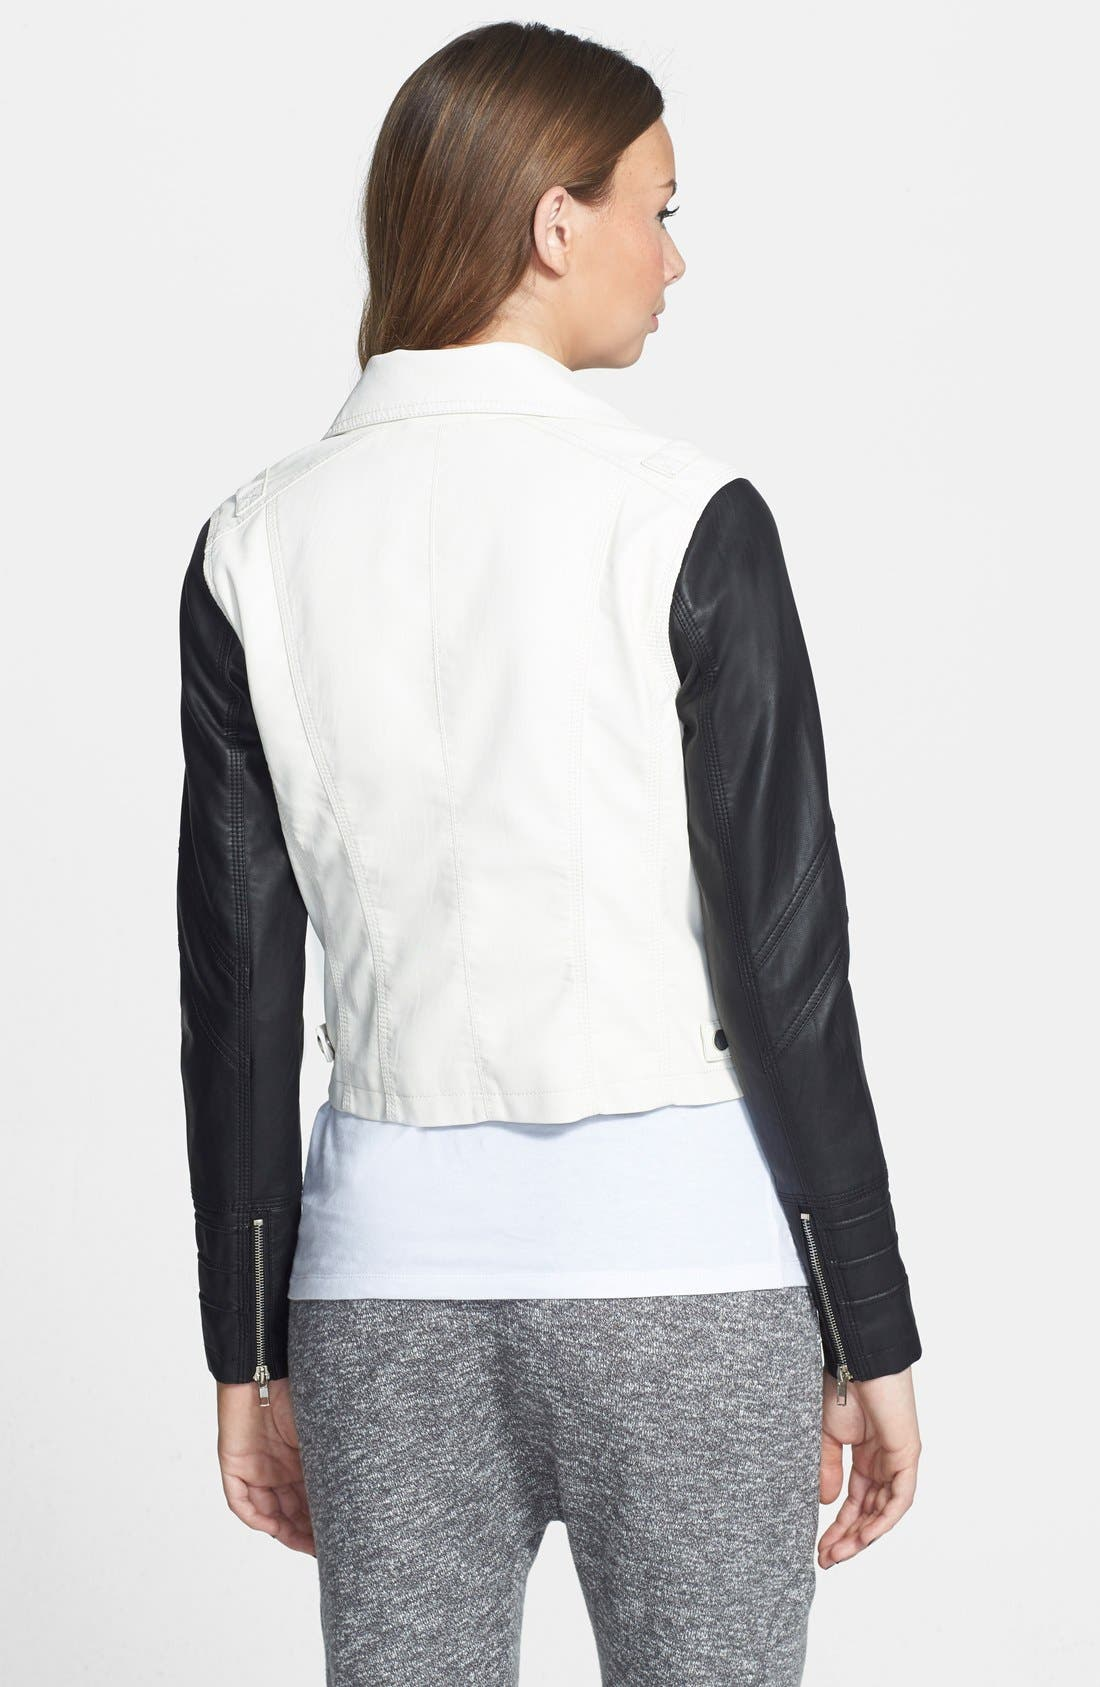 BOY MEETS GIRL, Colorblock Faux Leather Jacket, Alternate thumbnail 3, color, 100